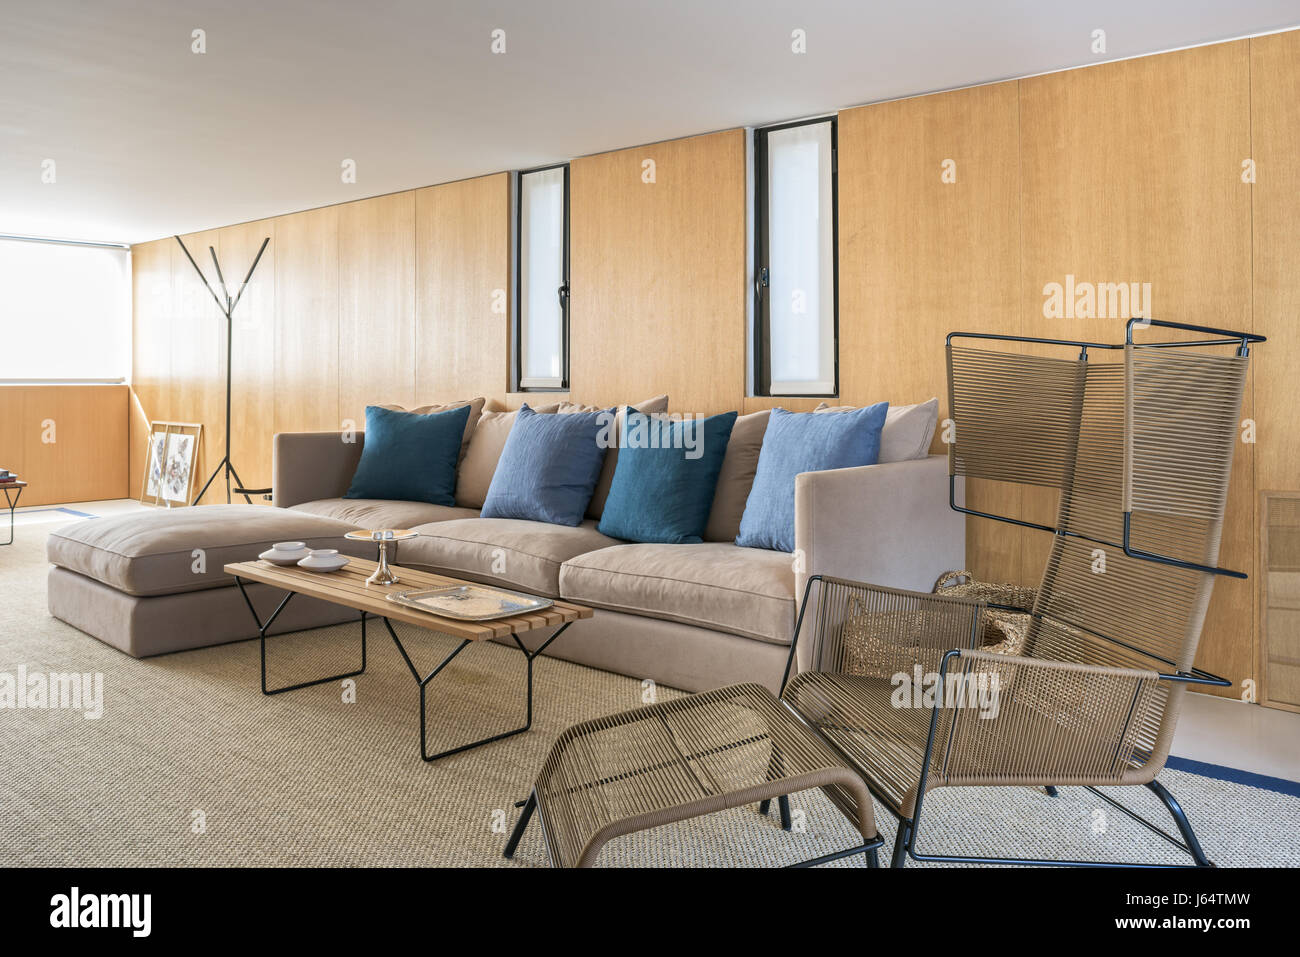 Furniture Designer Stockfotos & Furniture Designer Bilder - Alamy